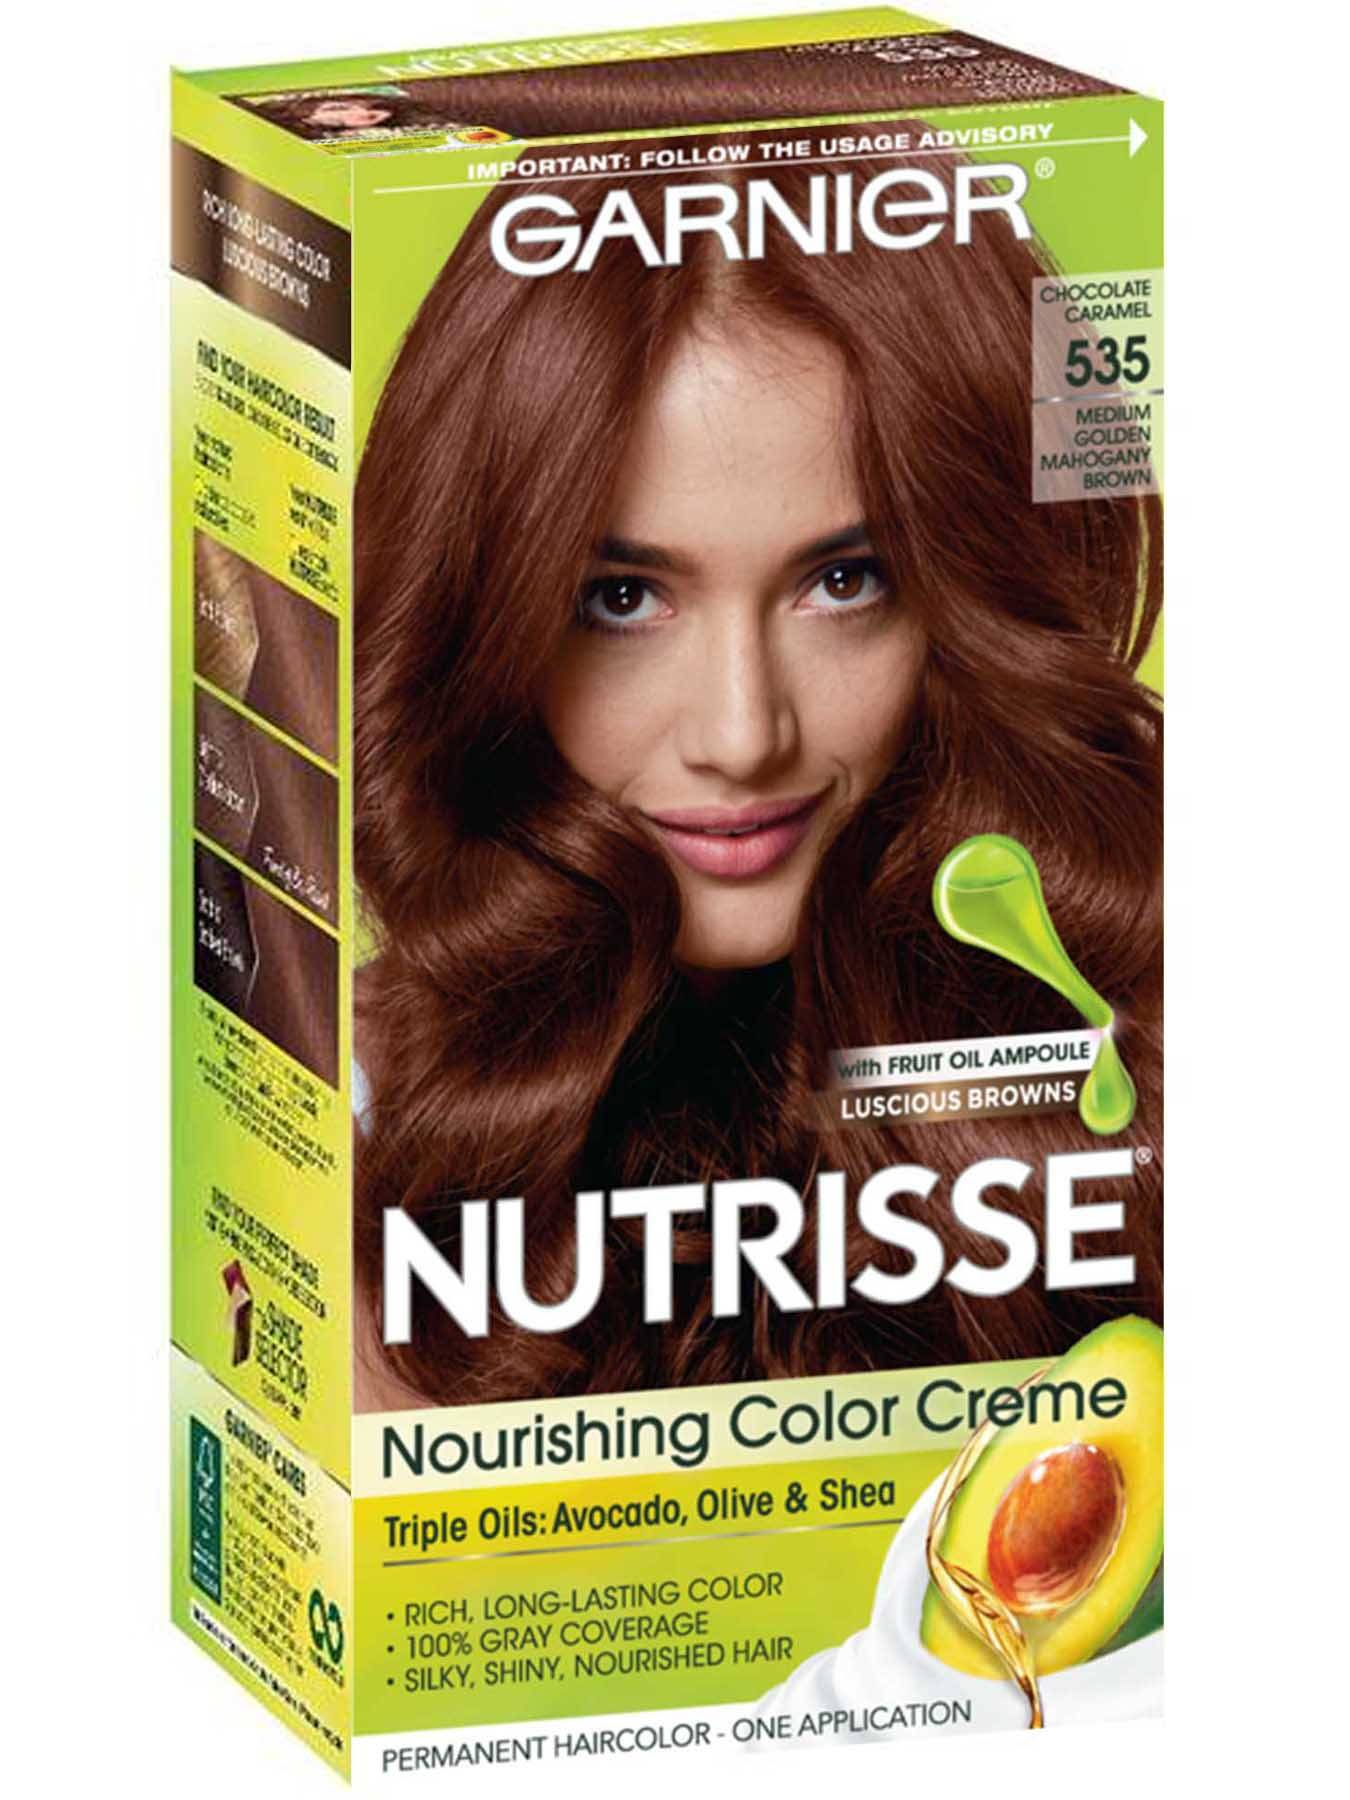 Nutrisse Nourishing Color Creme - Golden Mahogany Brown 535 - Garnier